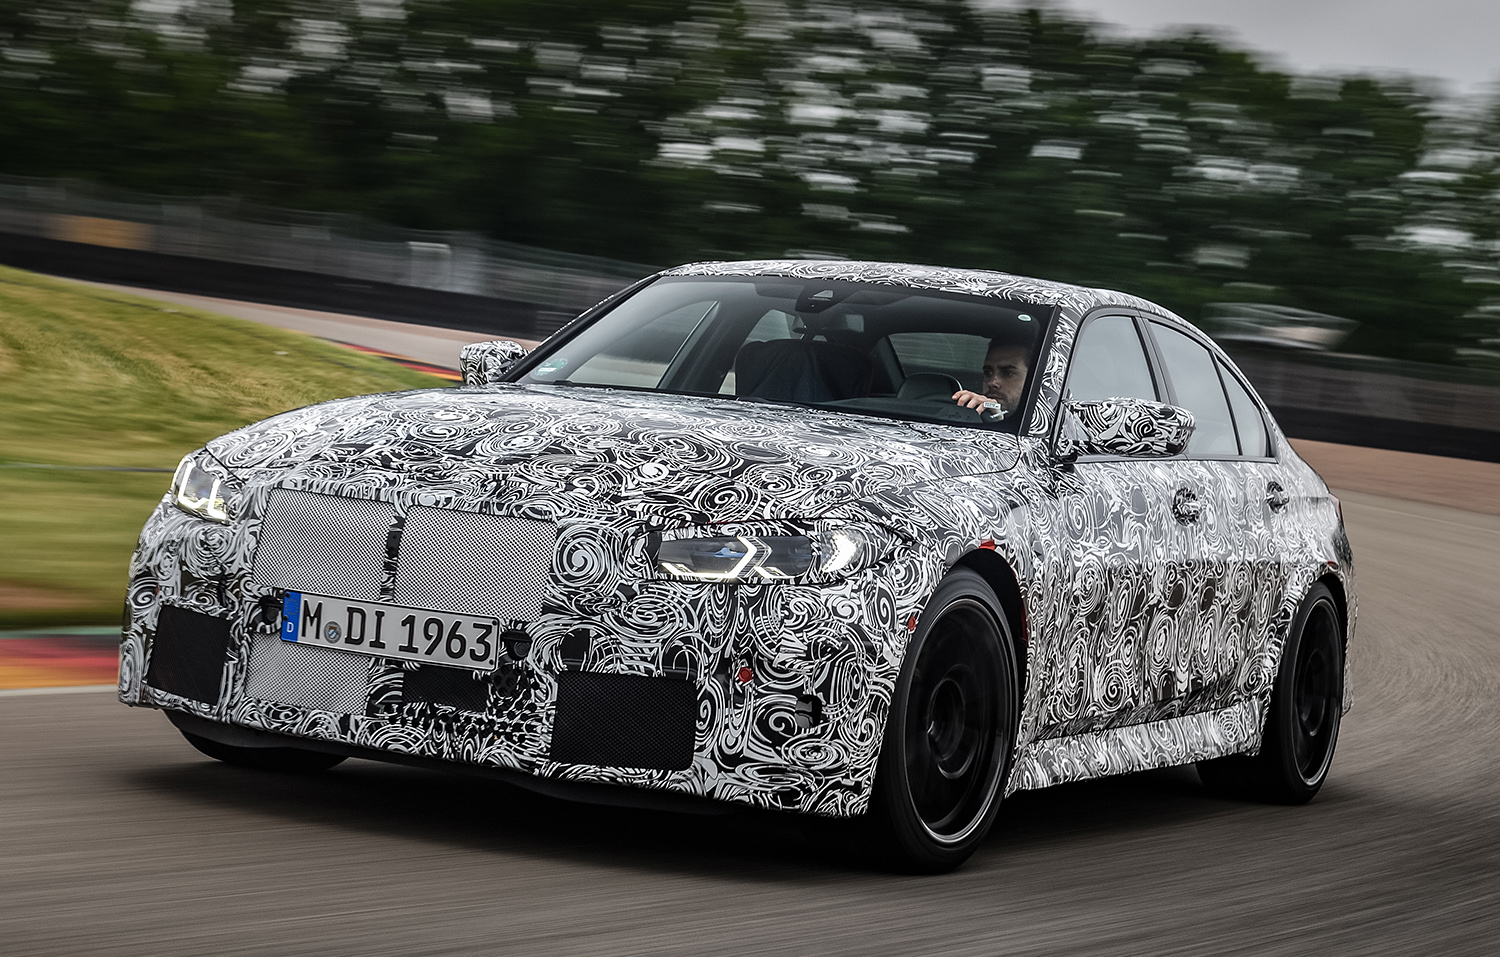 BMW M3 Touring confirmed